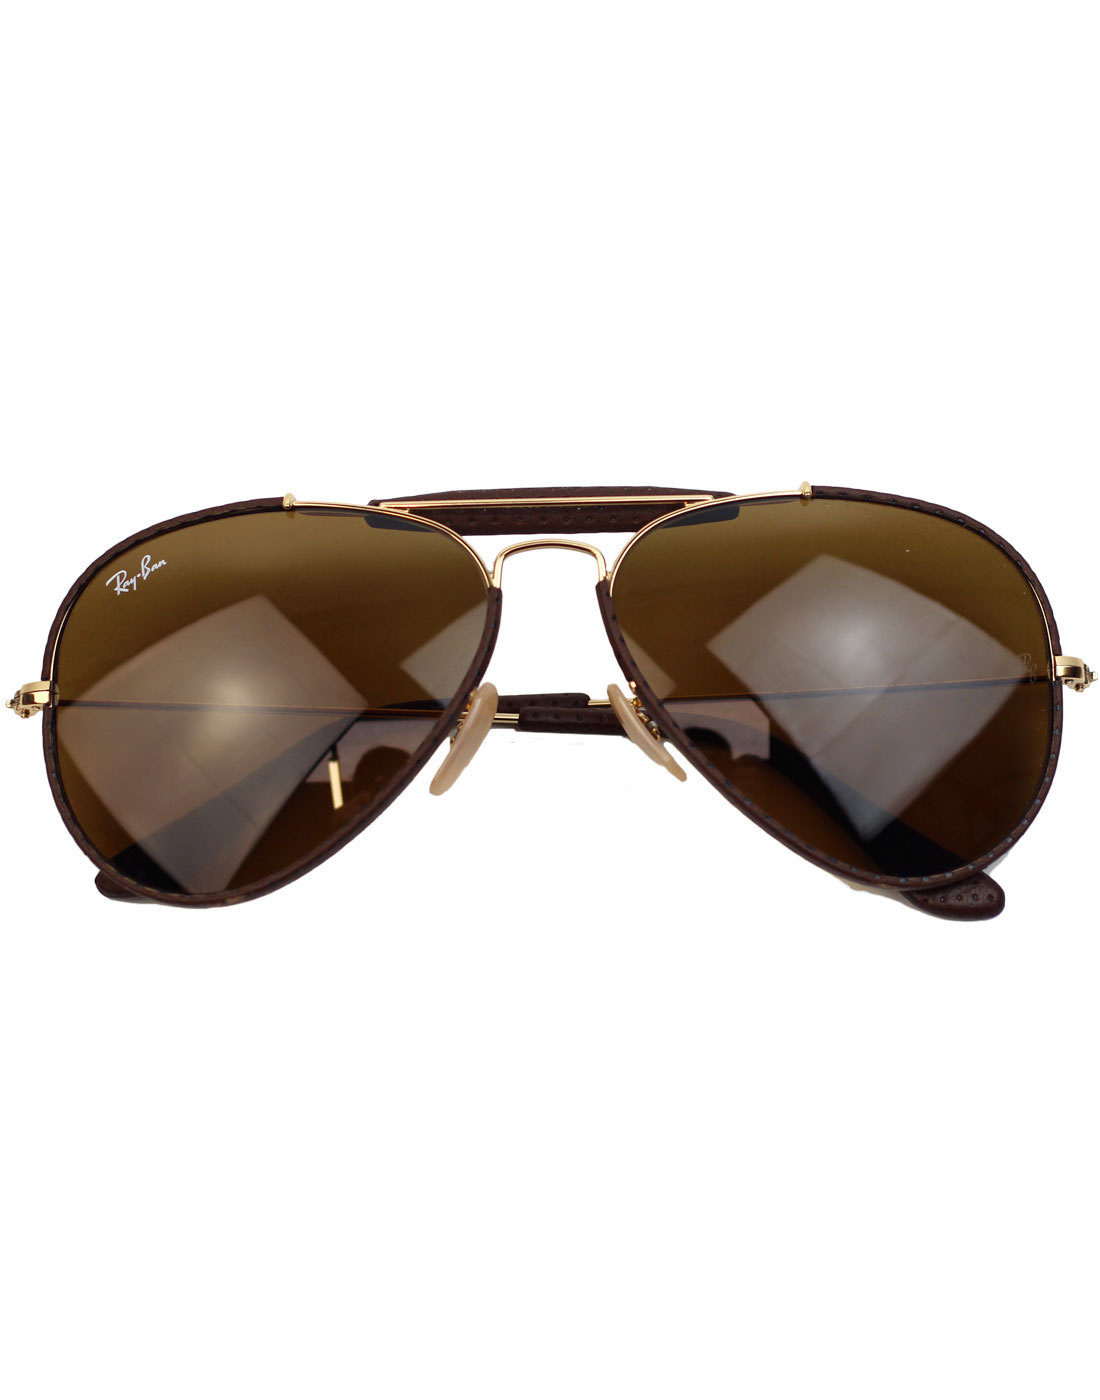 a6ac72cf4 RAY-BAN Outdoorsman Craft Retro 70s Leather Sunglasses in Brown